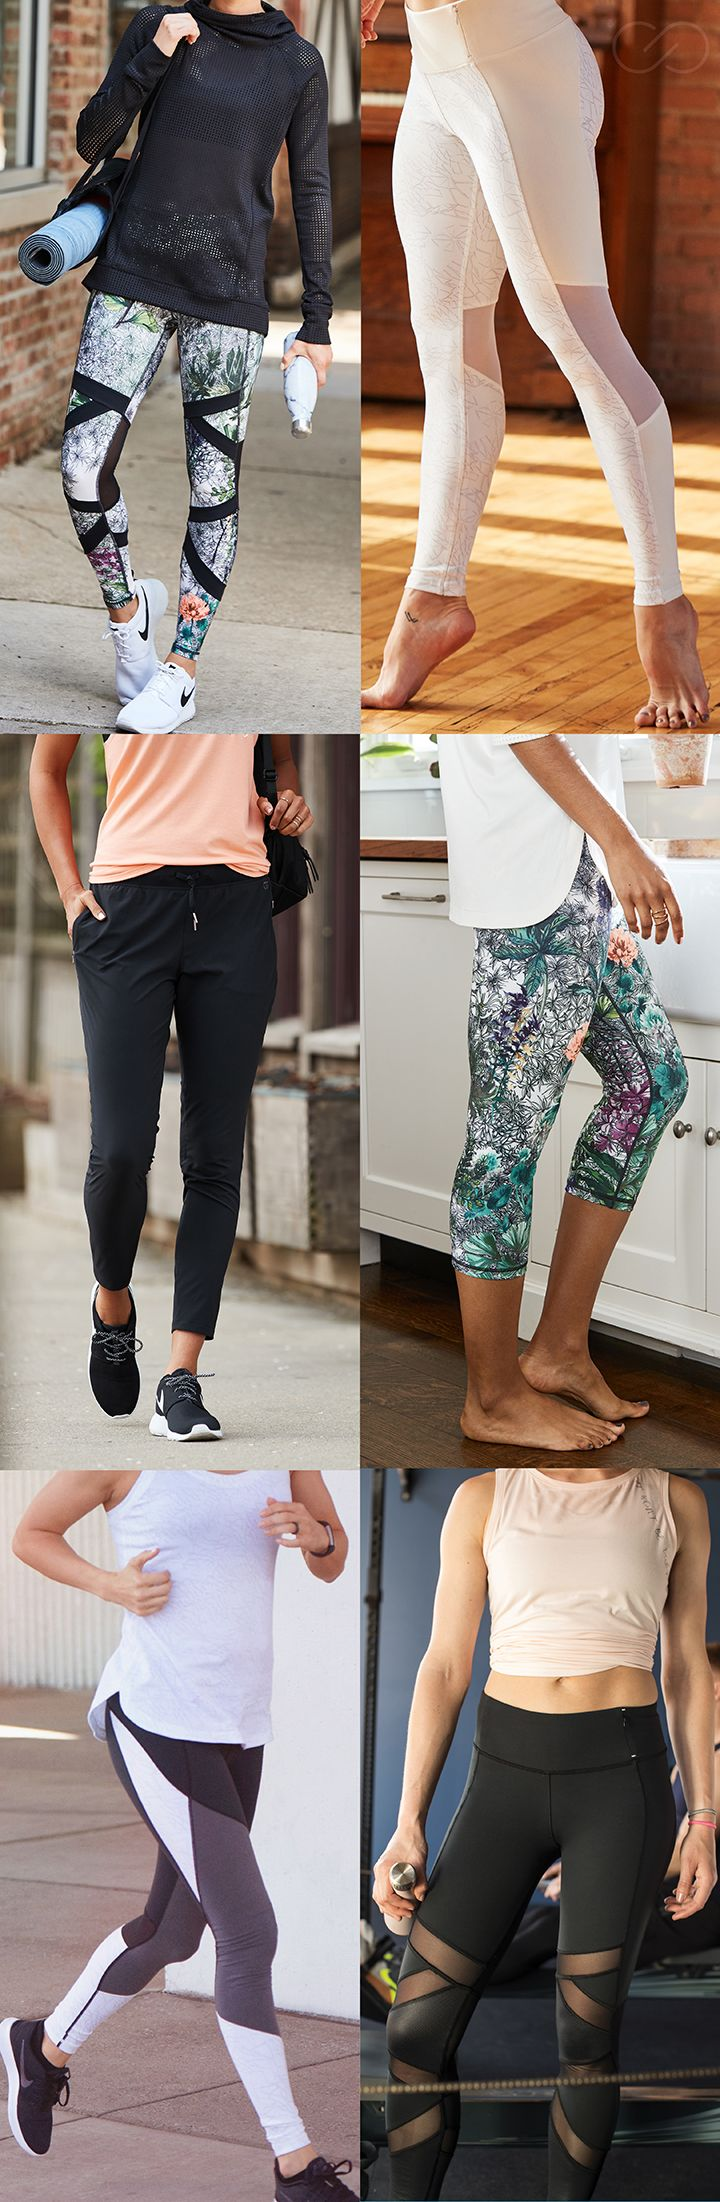 Take your workout look to the next level with cute, stylish and comfortable leggings. | CALIA by Carrie Underwood